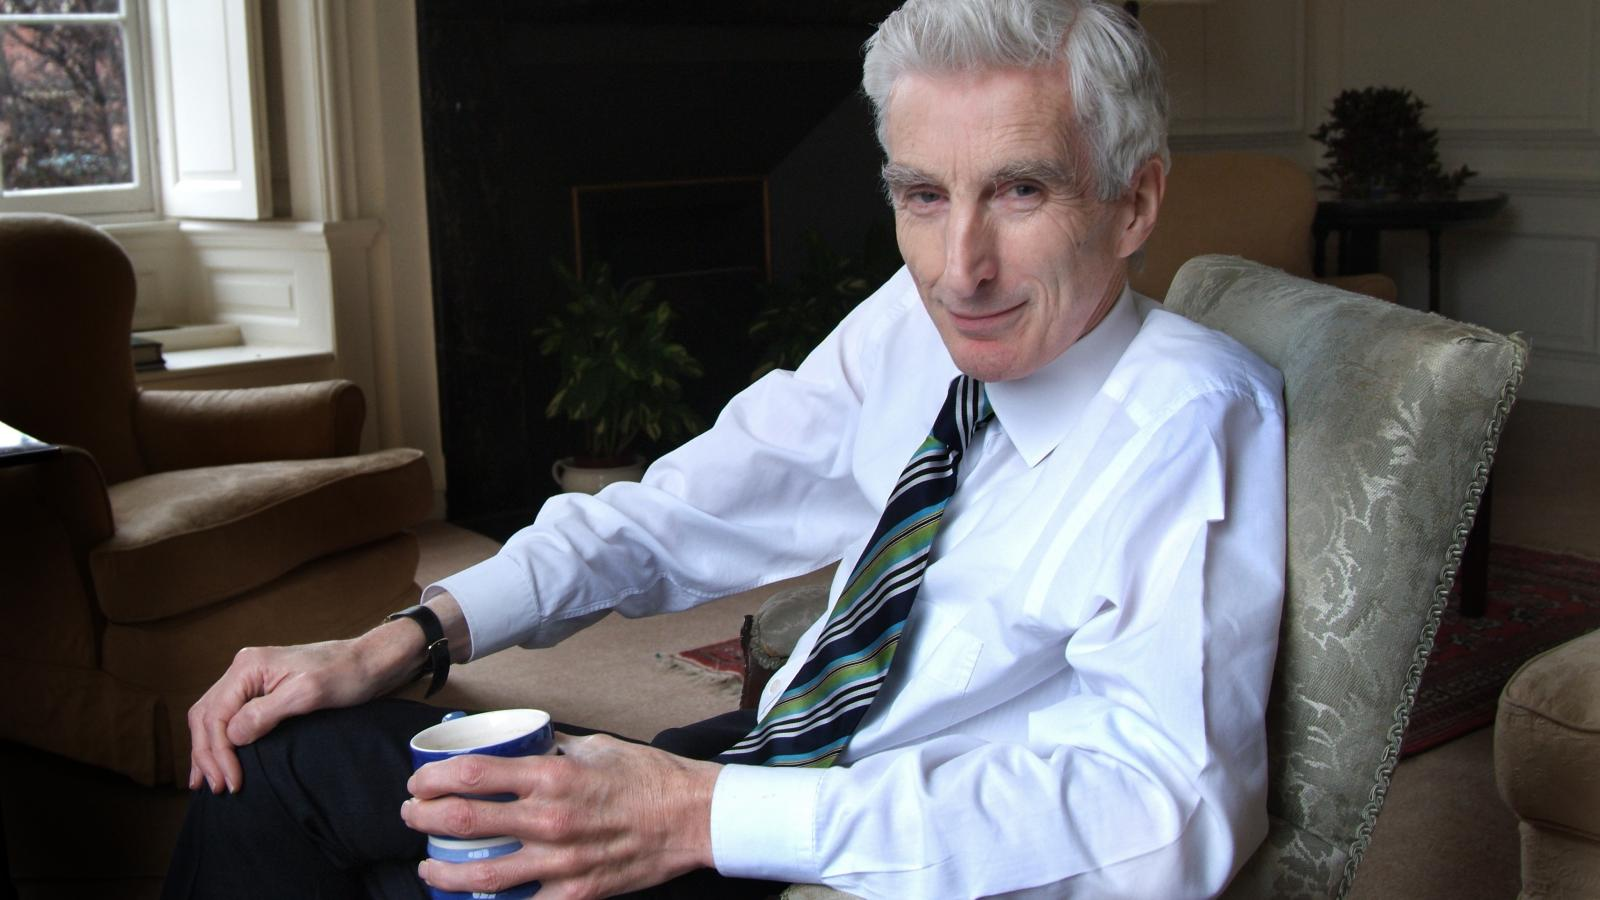 Martin Rees, copyright Anne Purkiss